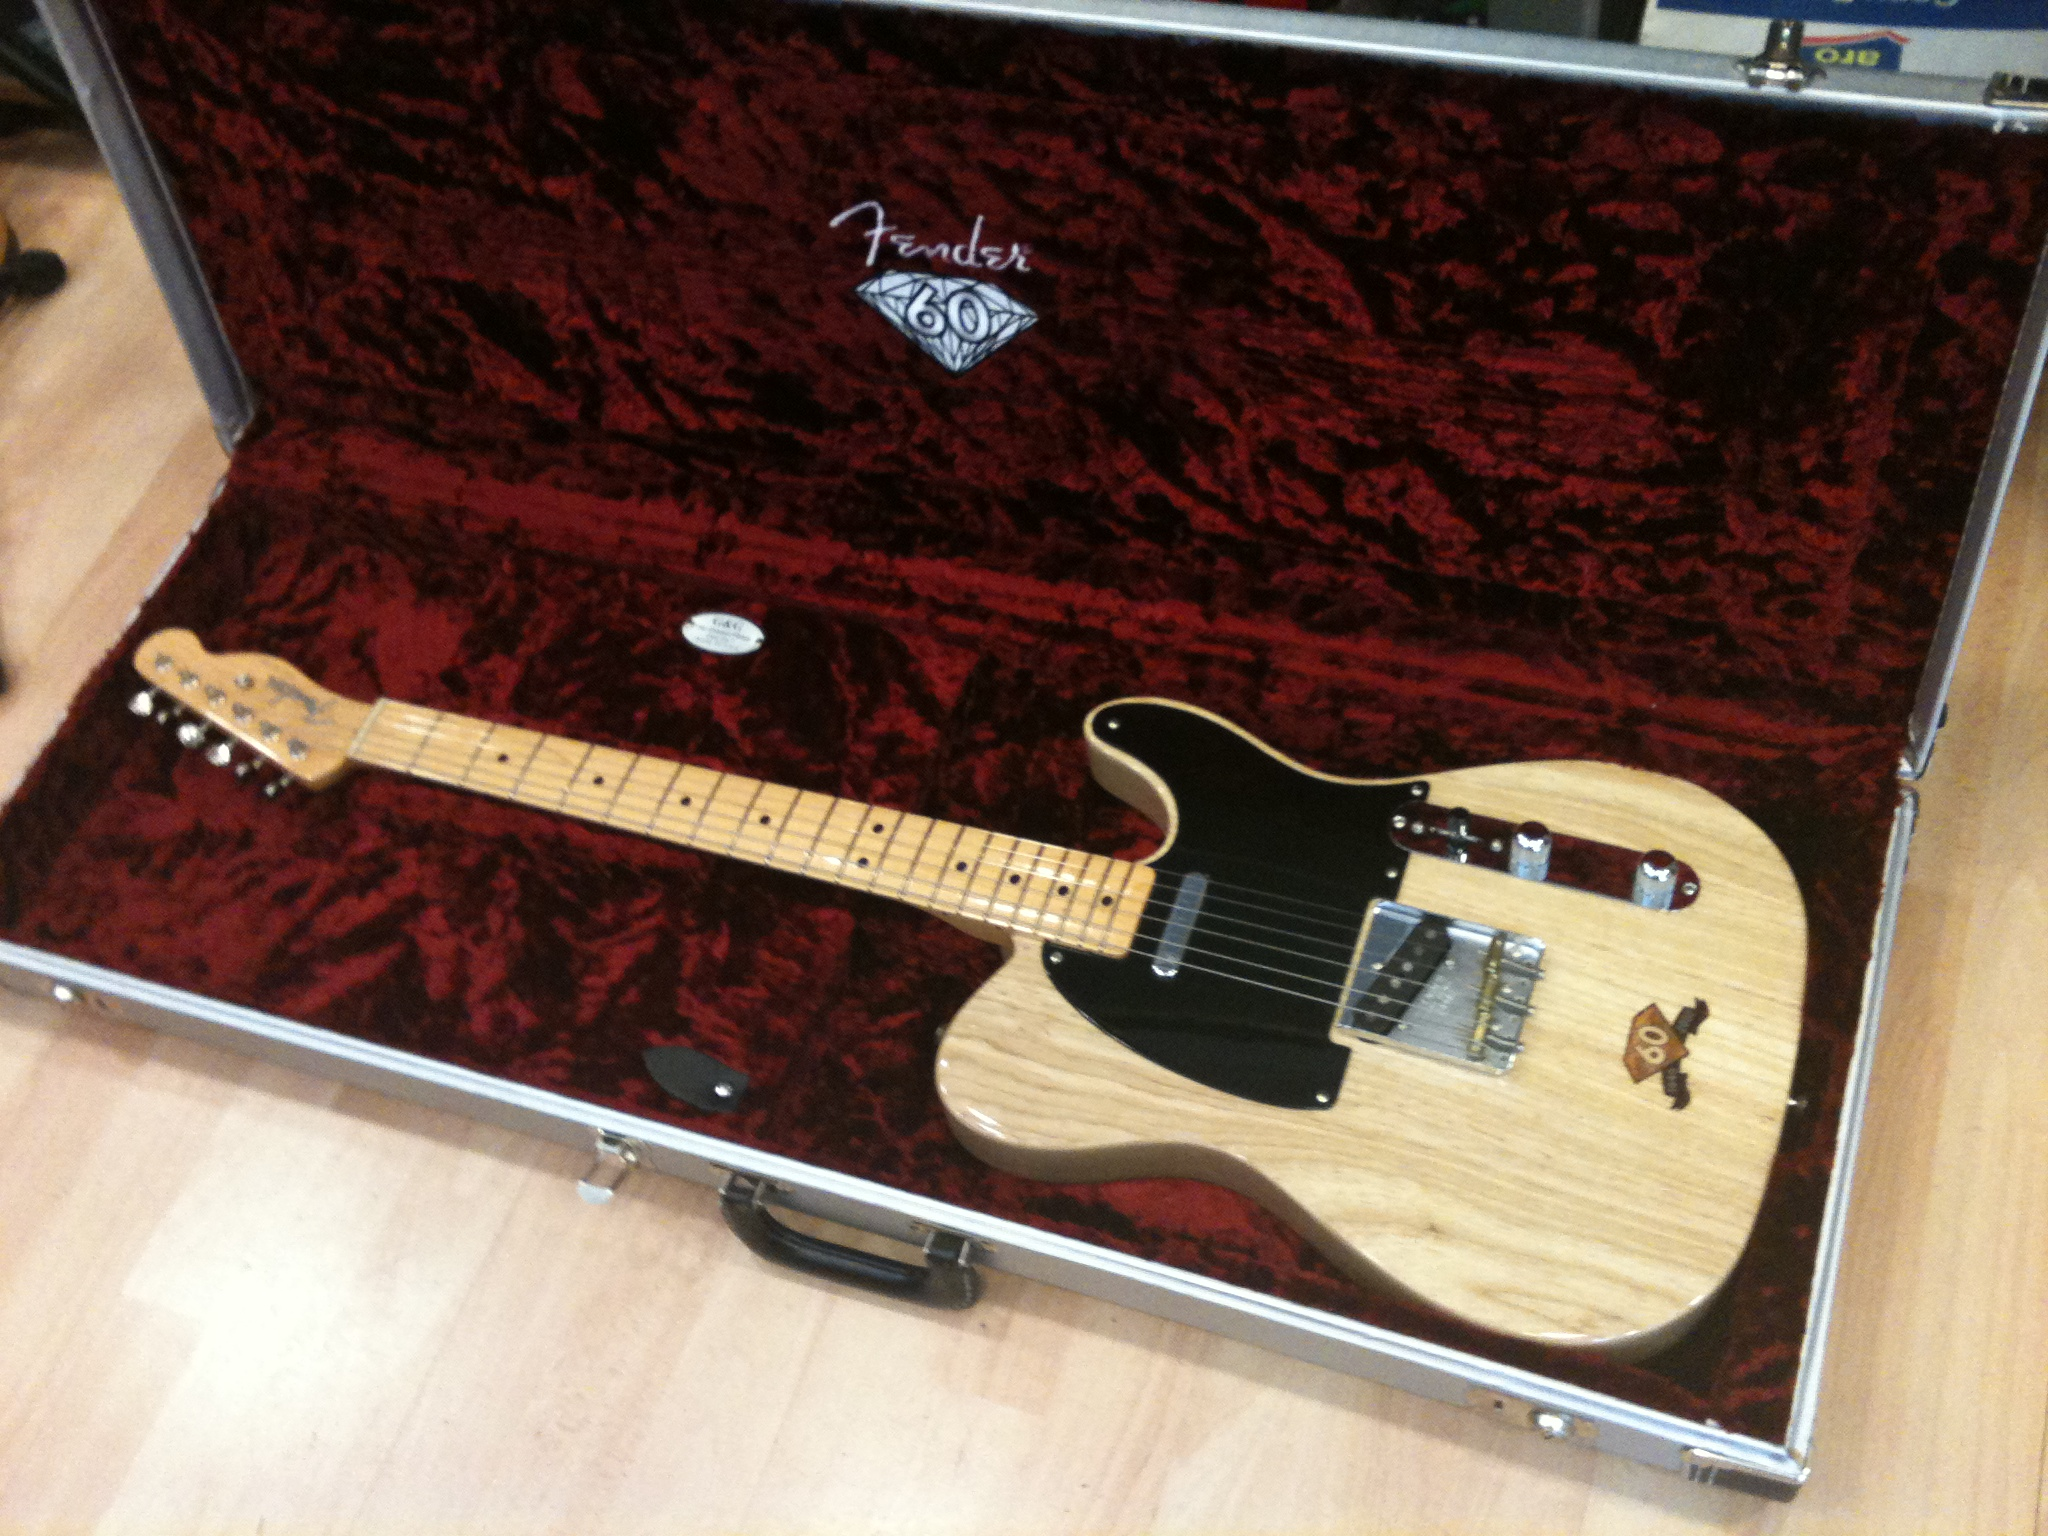 fender 60th anniversary limited edition telecaster 2006 image 260027 audiofanzine. Black Bedroom Furniture Sets. Home Design Ideas